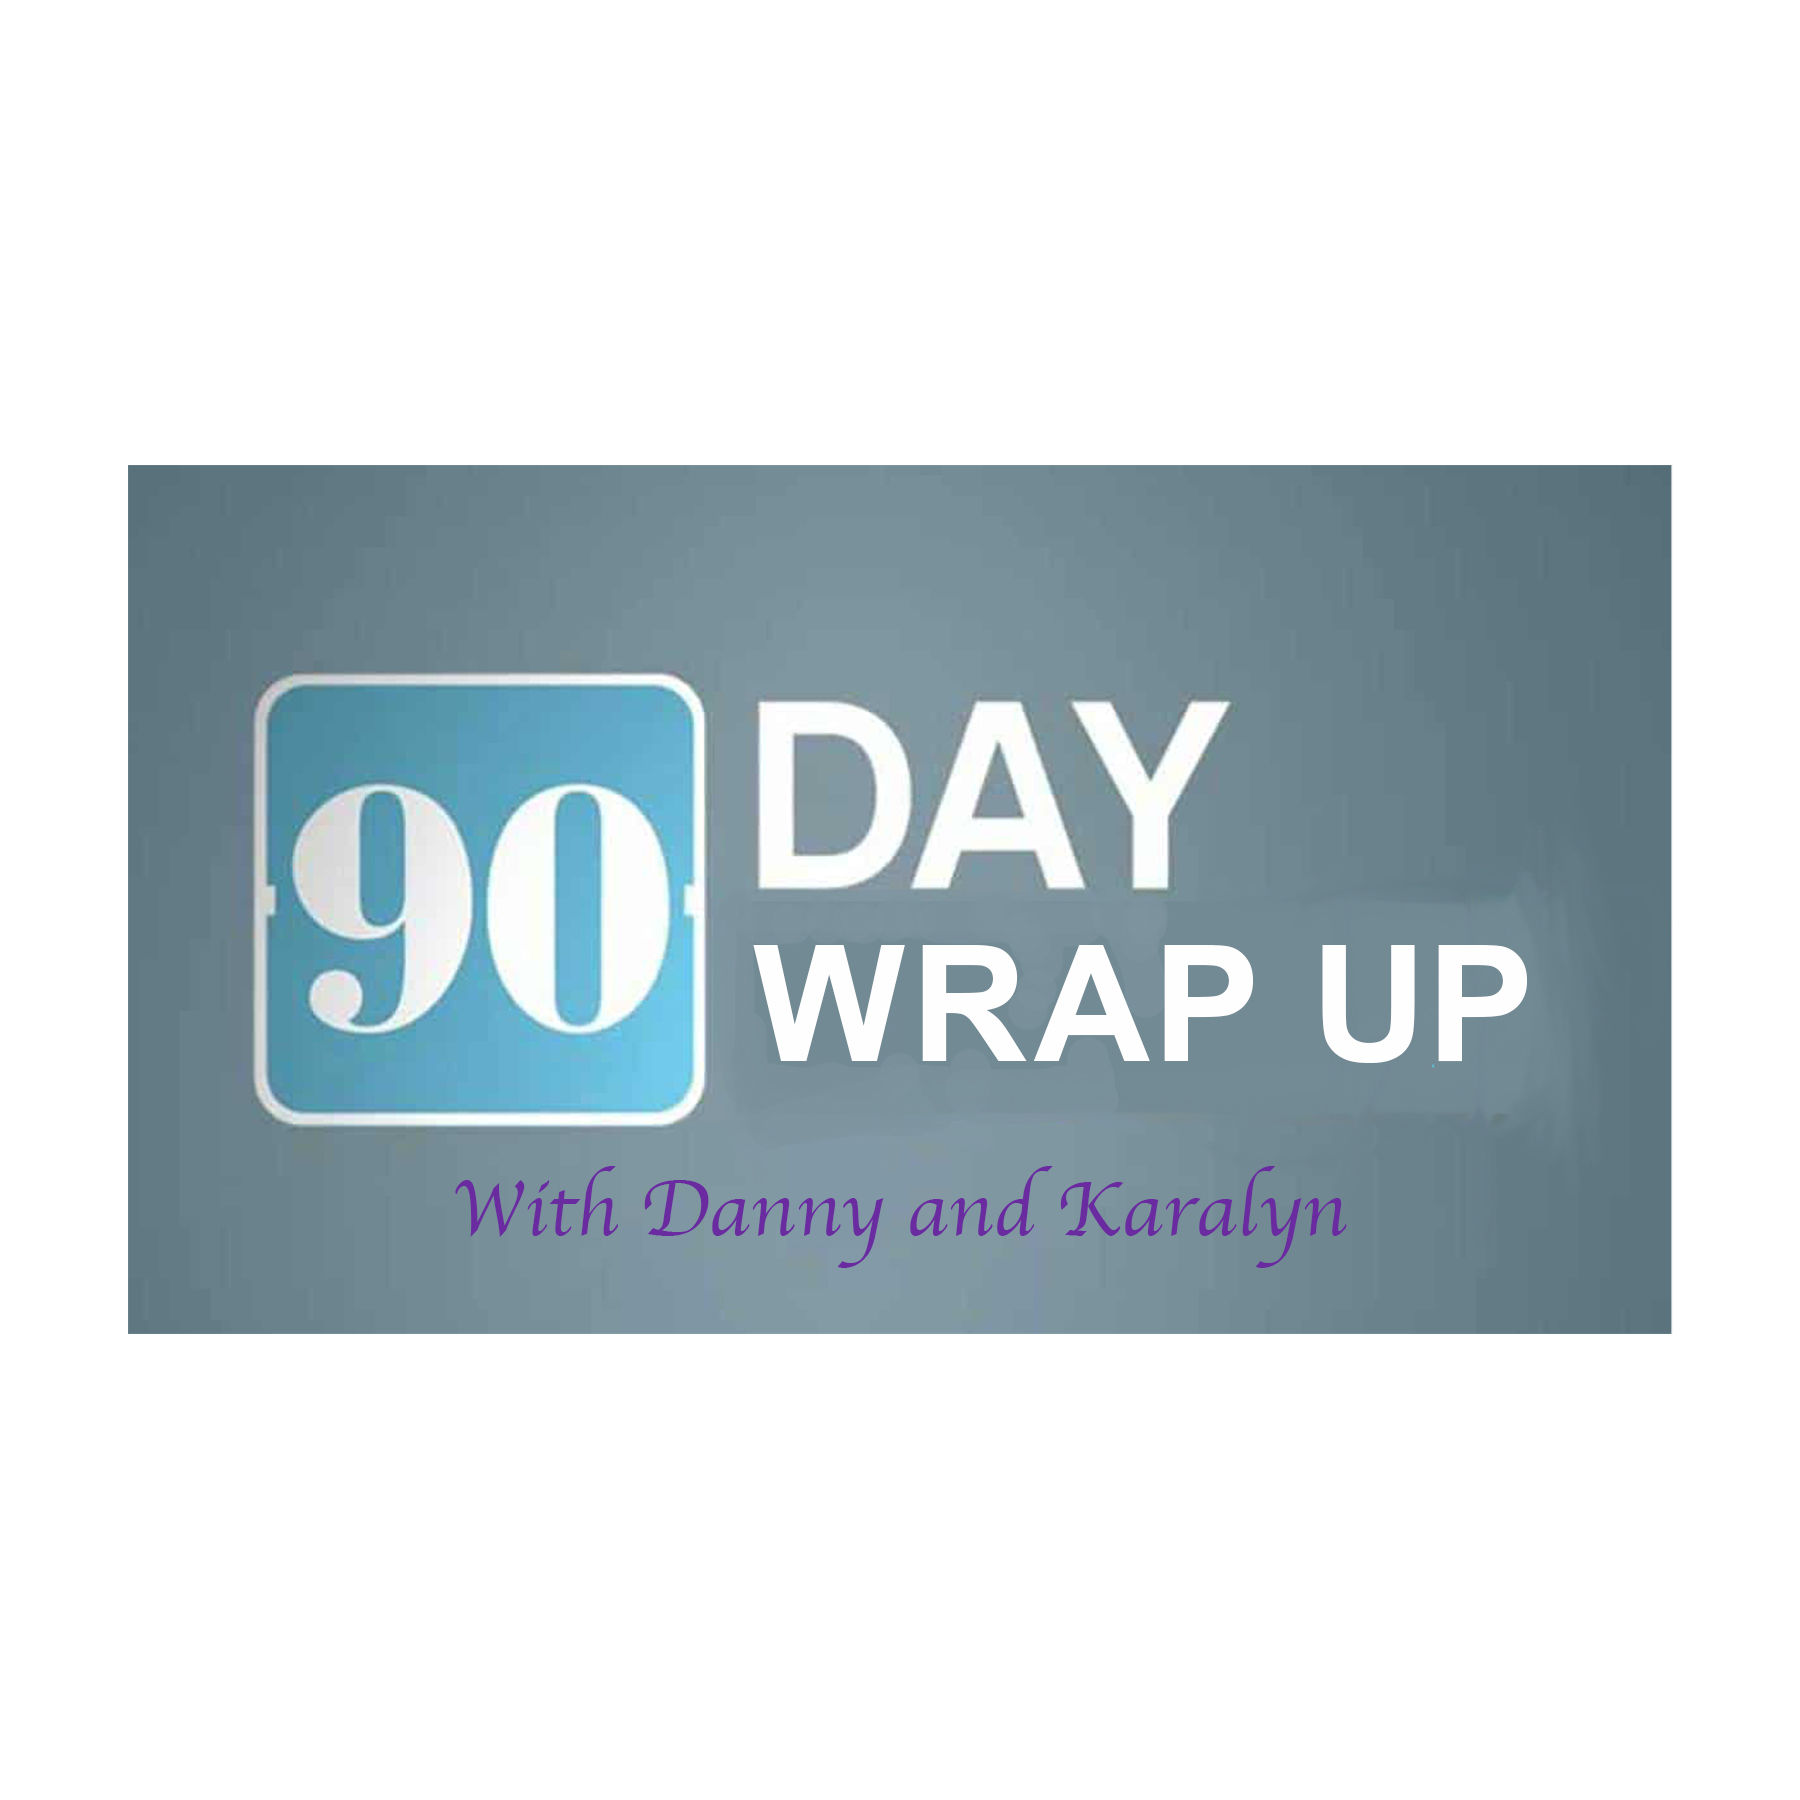 90 Day Wrap Up